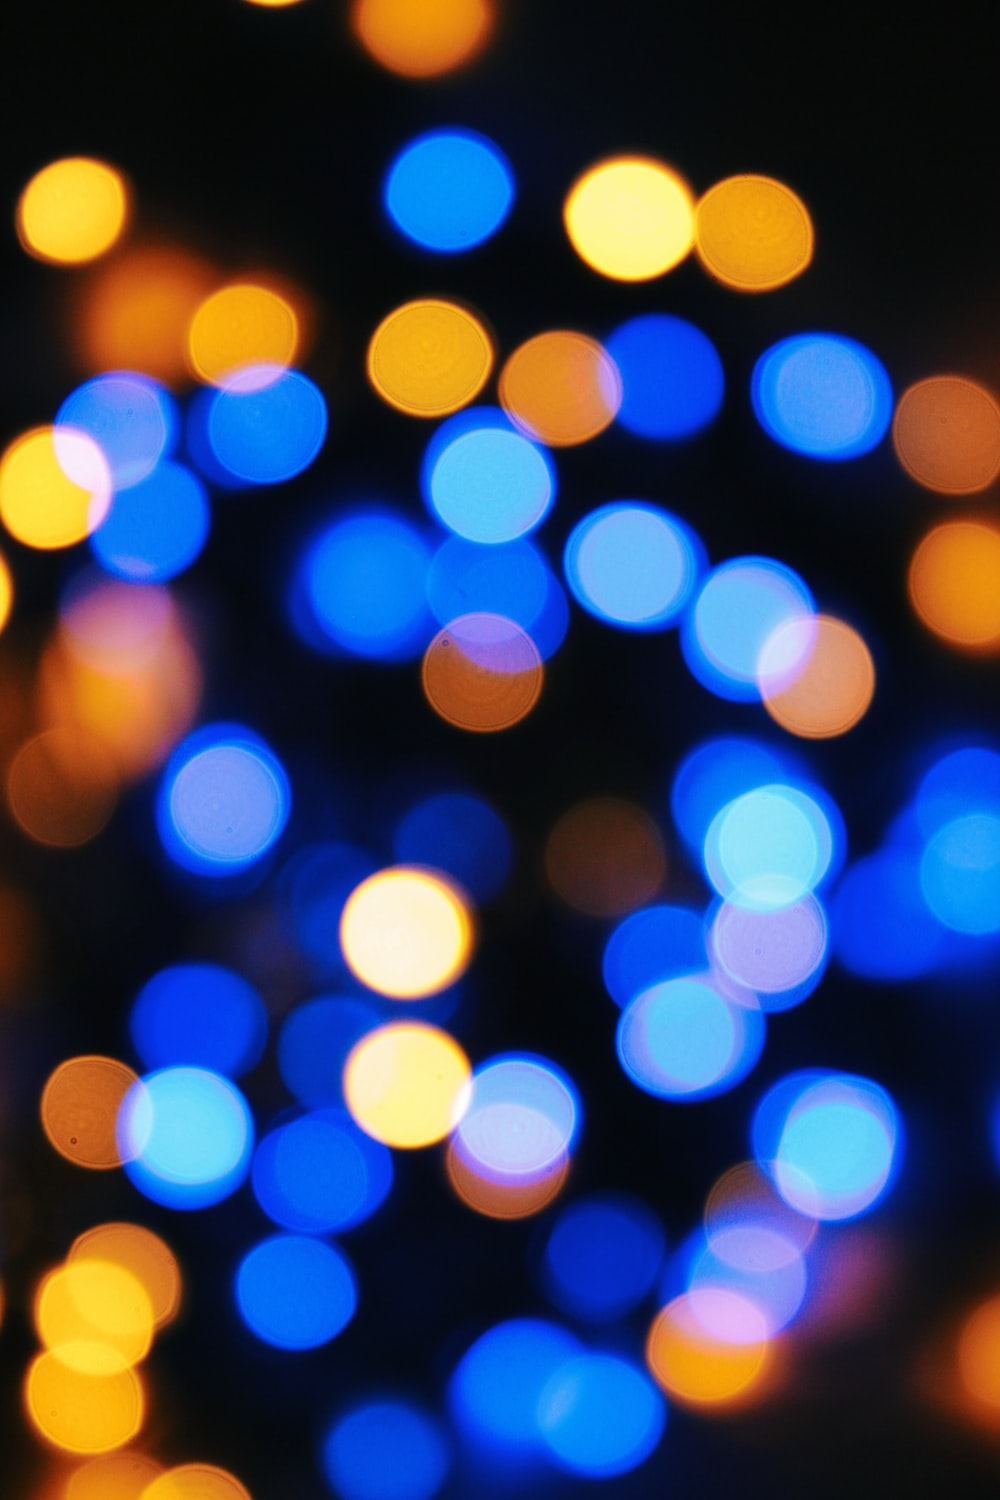 500+ Stunning Bokeh Pictures [HD] | Download Free Images & Stock